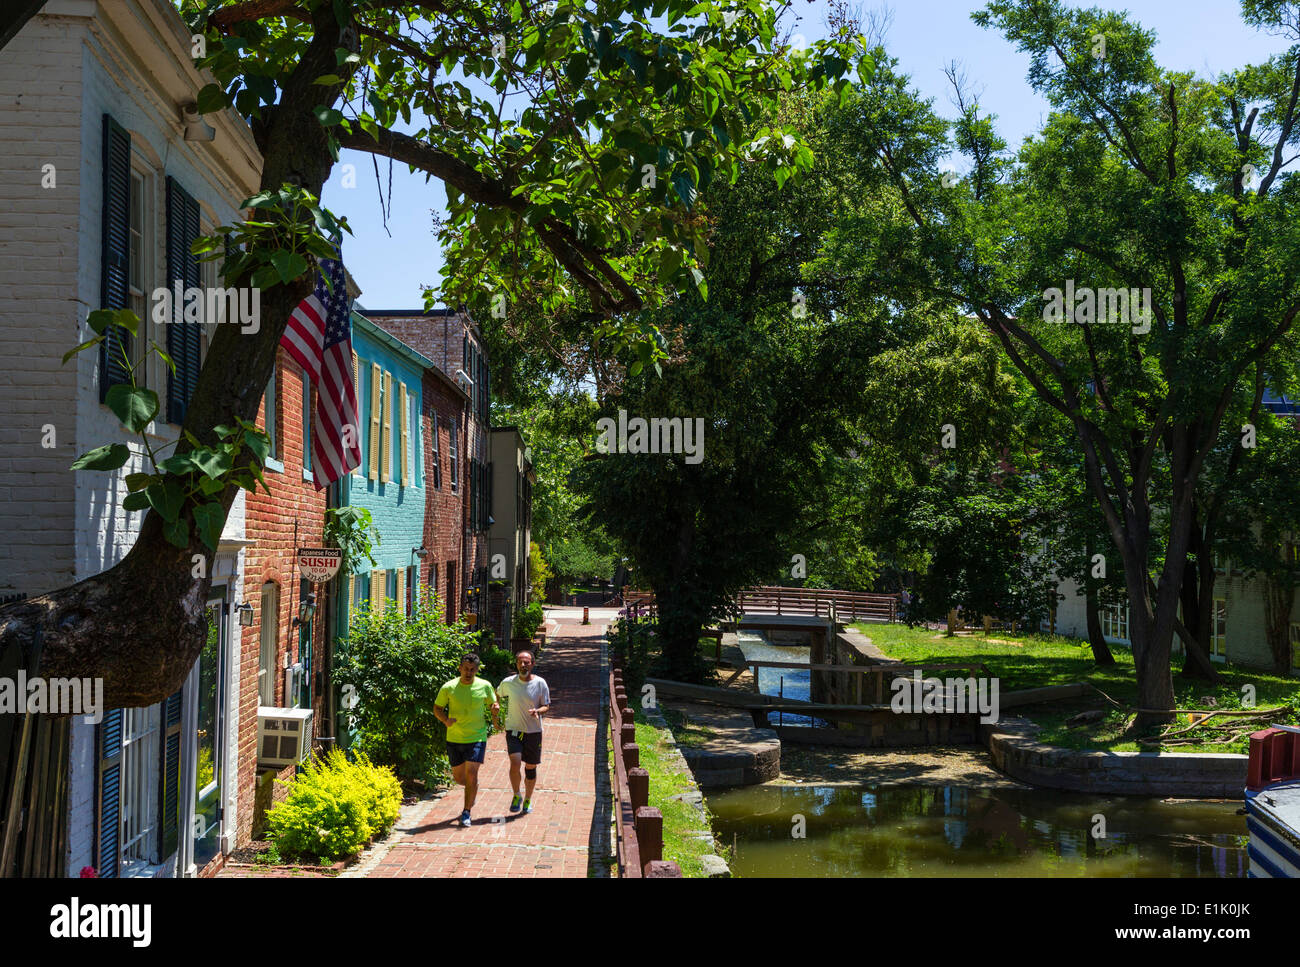 Runners on the Chesapeake and Ohio Canal towpath in downtown Georgetown, Washington DC, USA - Stock Image